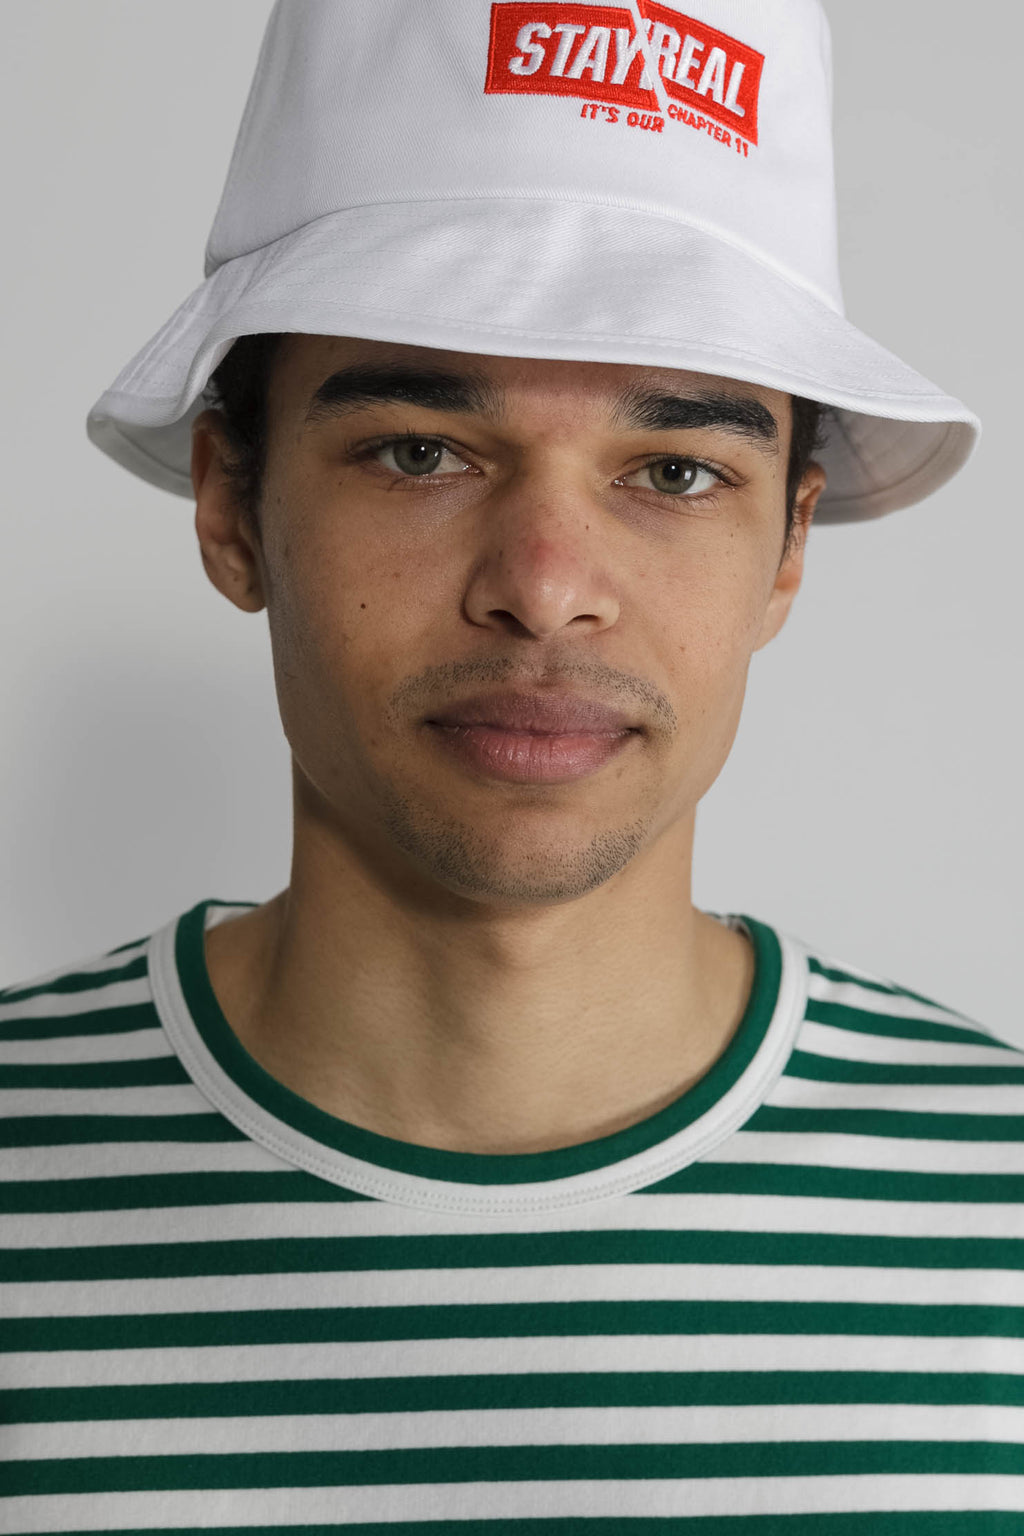 Marine Stripe Crew in White and Green 006